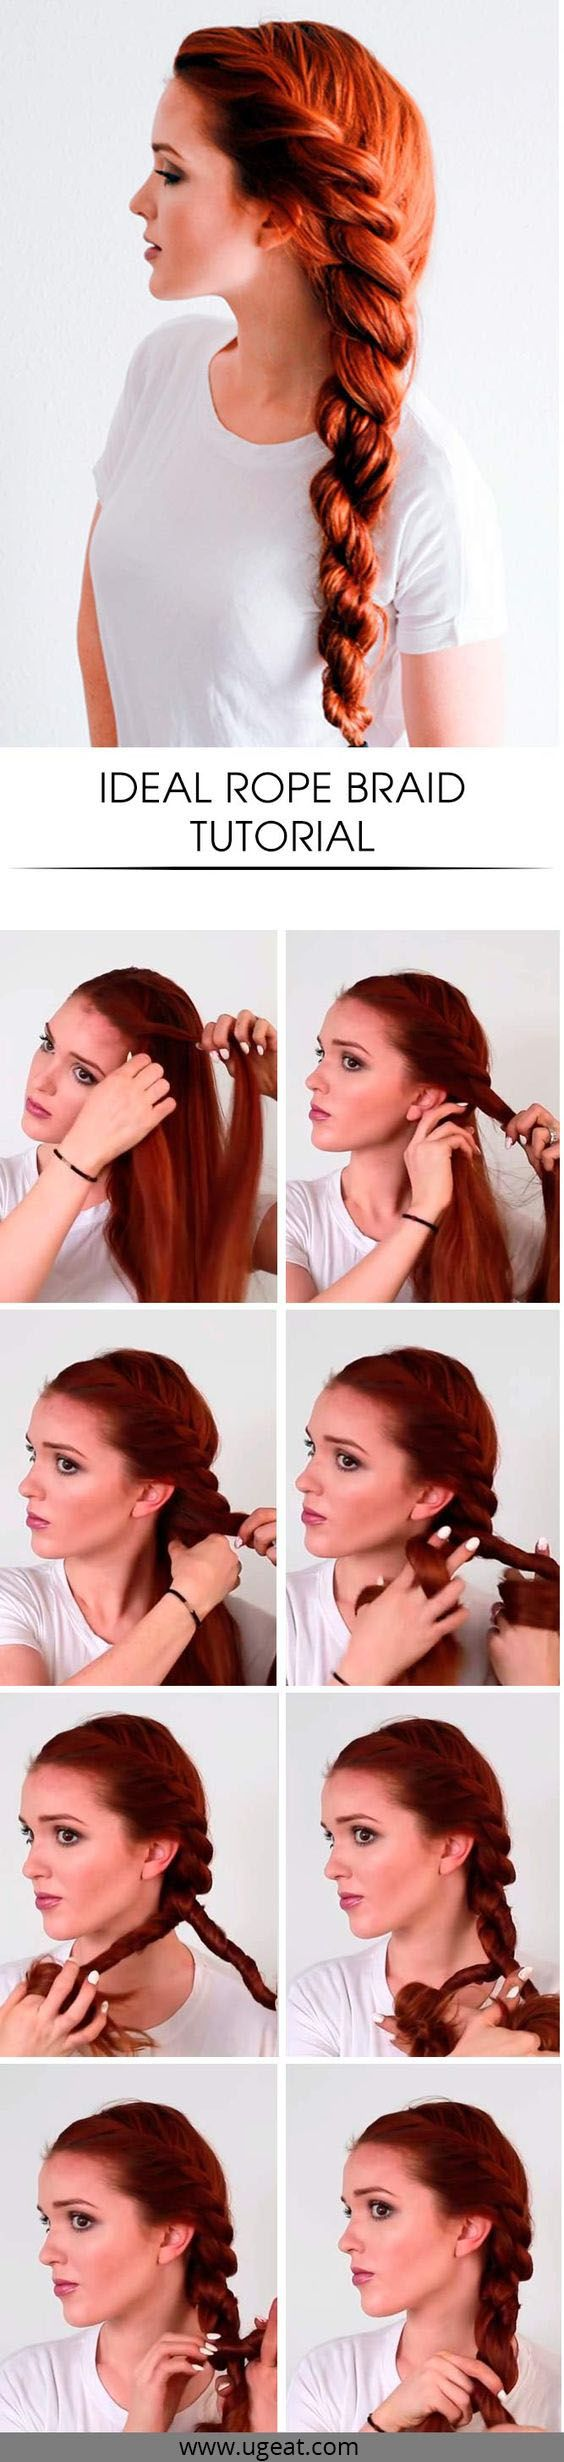 how to make beautiful hair style by yourself.